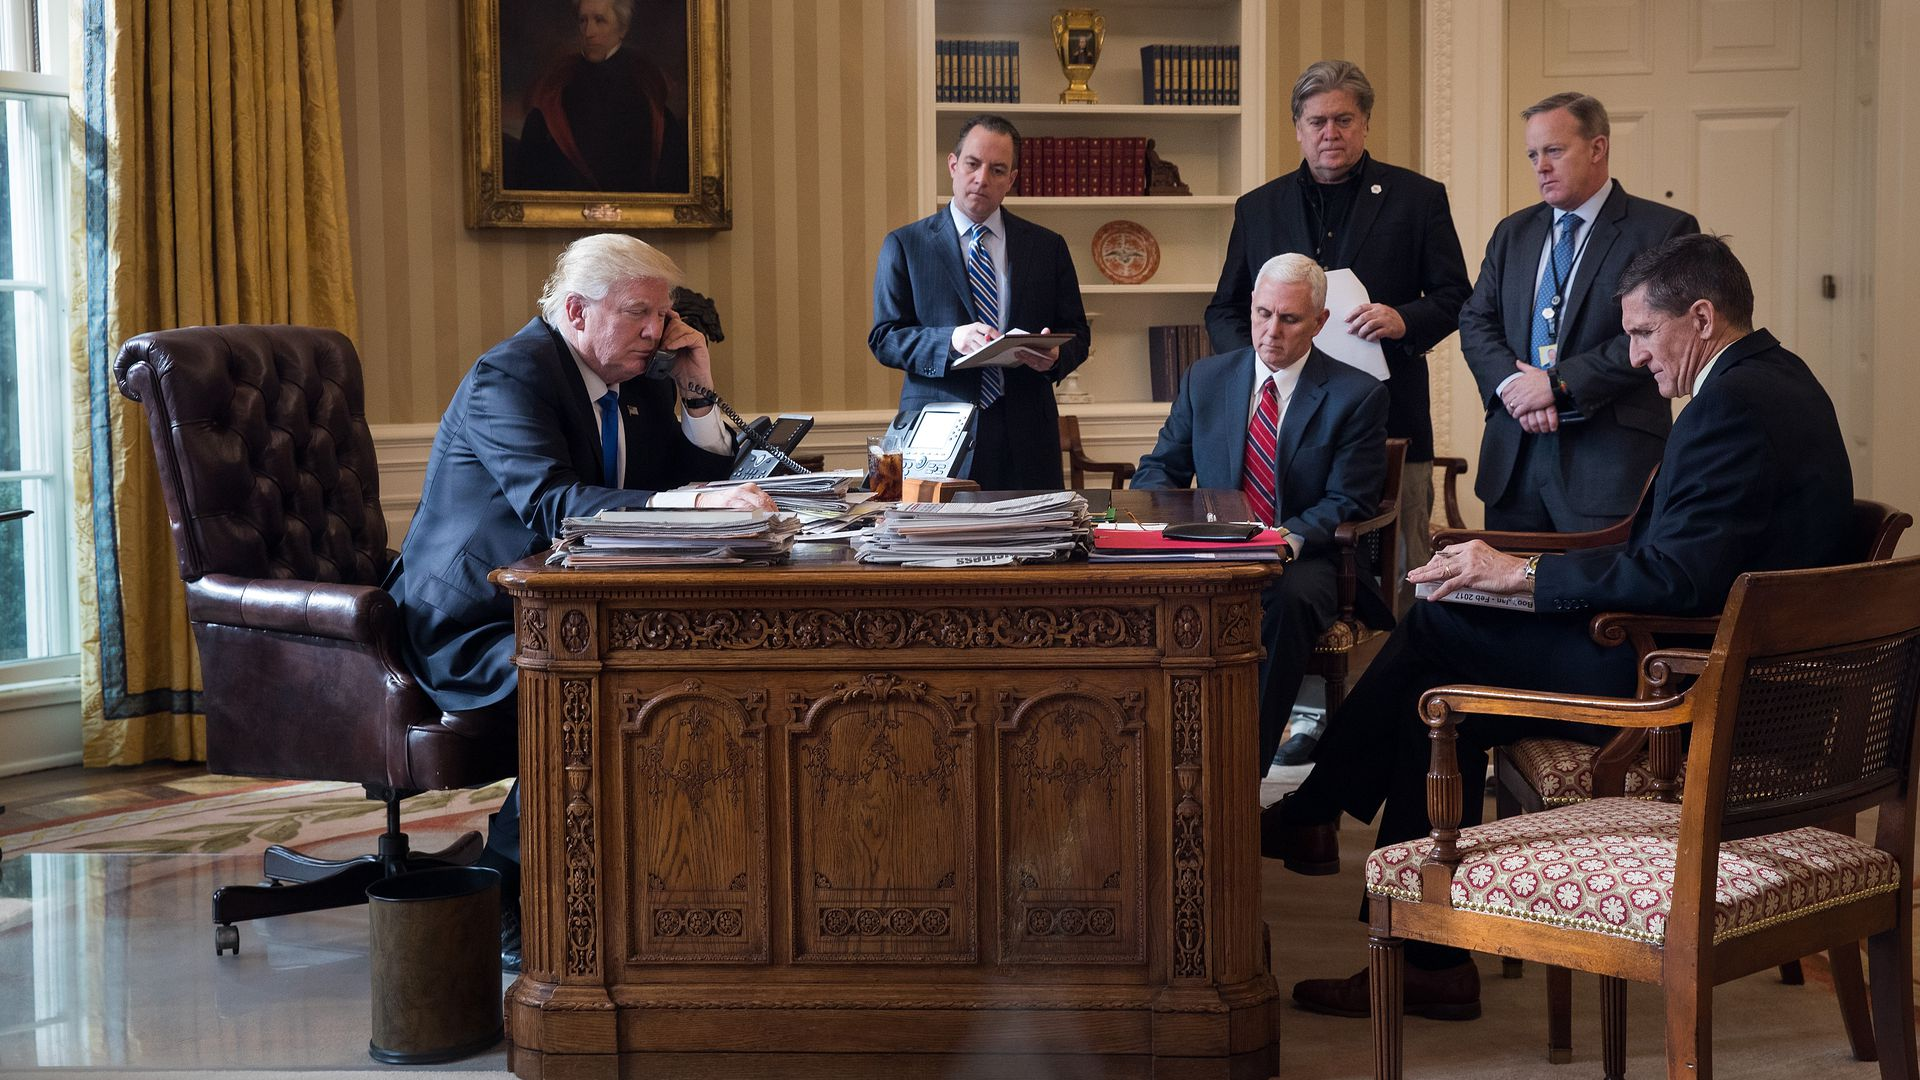 Trump sits in the Oval Office in January 2017. The only people in this photo who still work at the White House are Trump and Pence. Photo: Drew Angerer/Getty Images